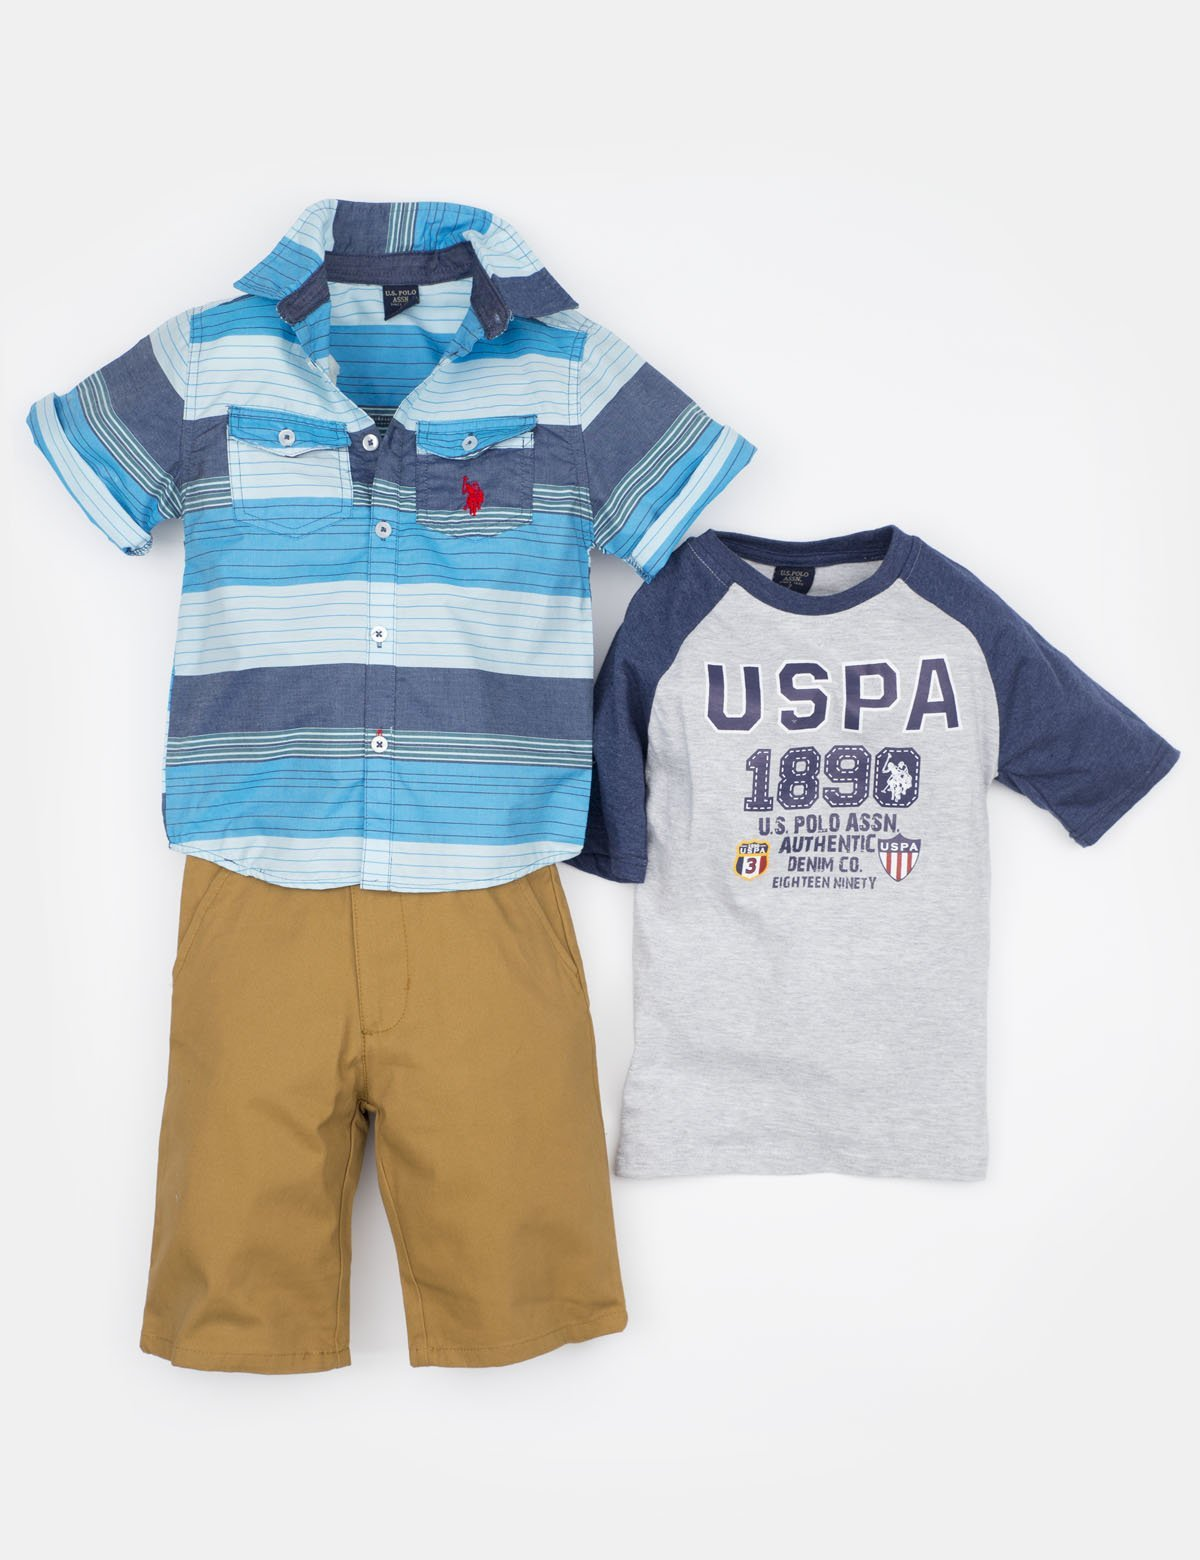 TODDLER 3 PIECE SET - SHIRT, TEE & SHORTS